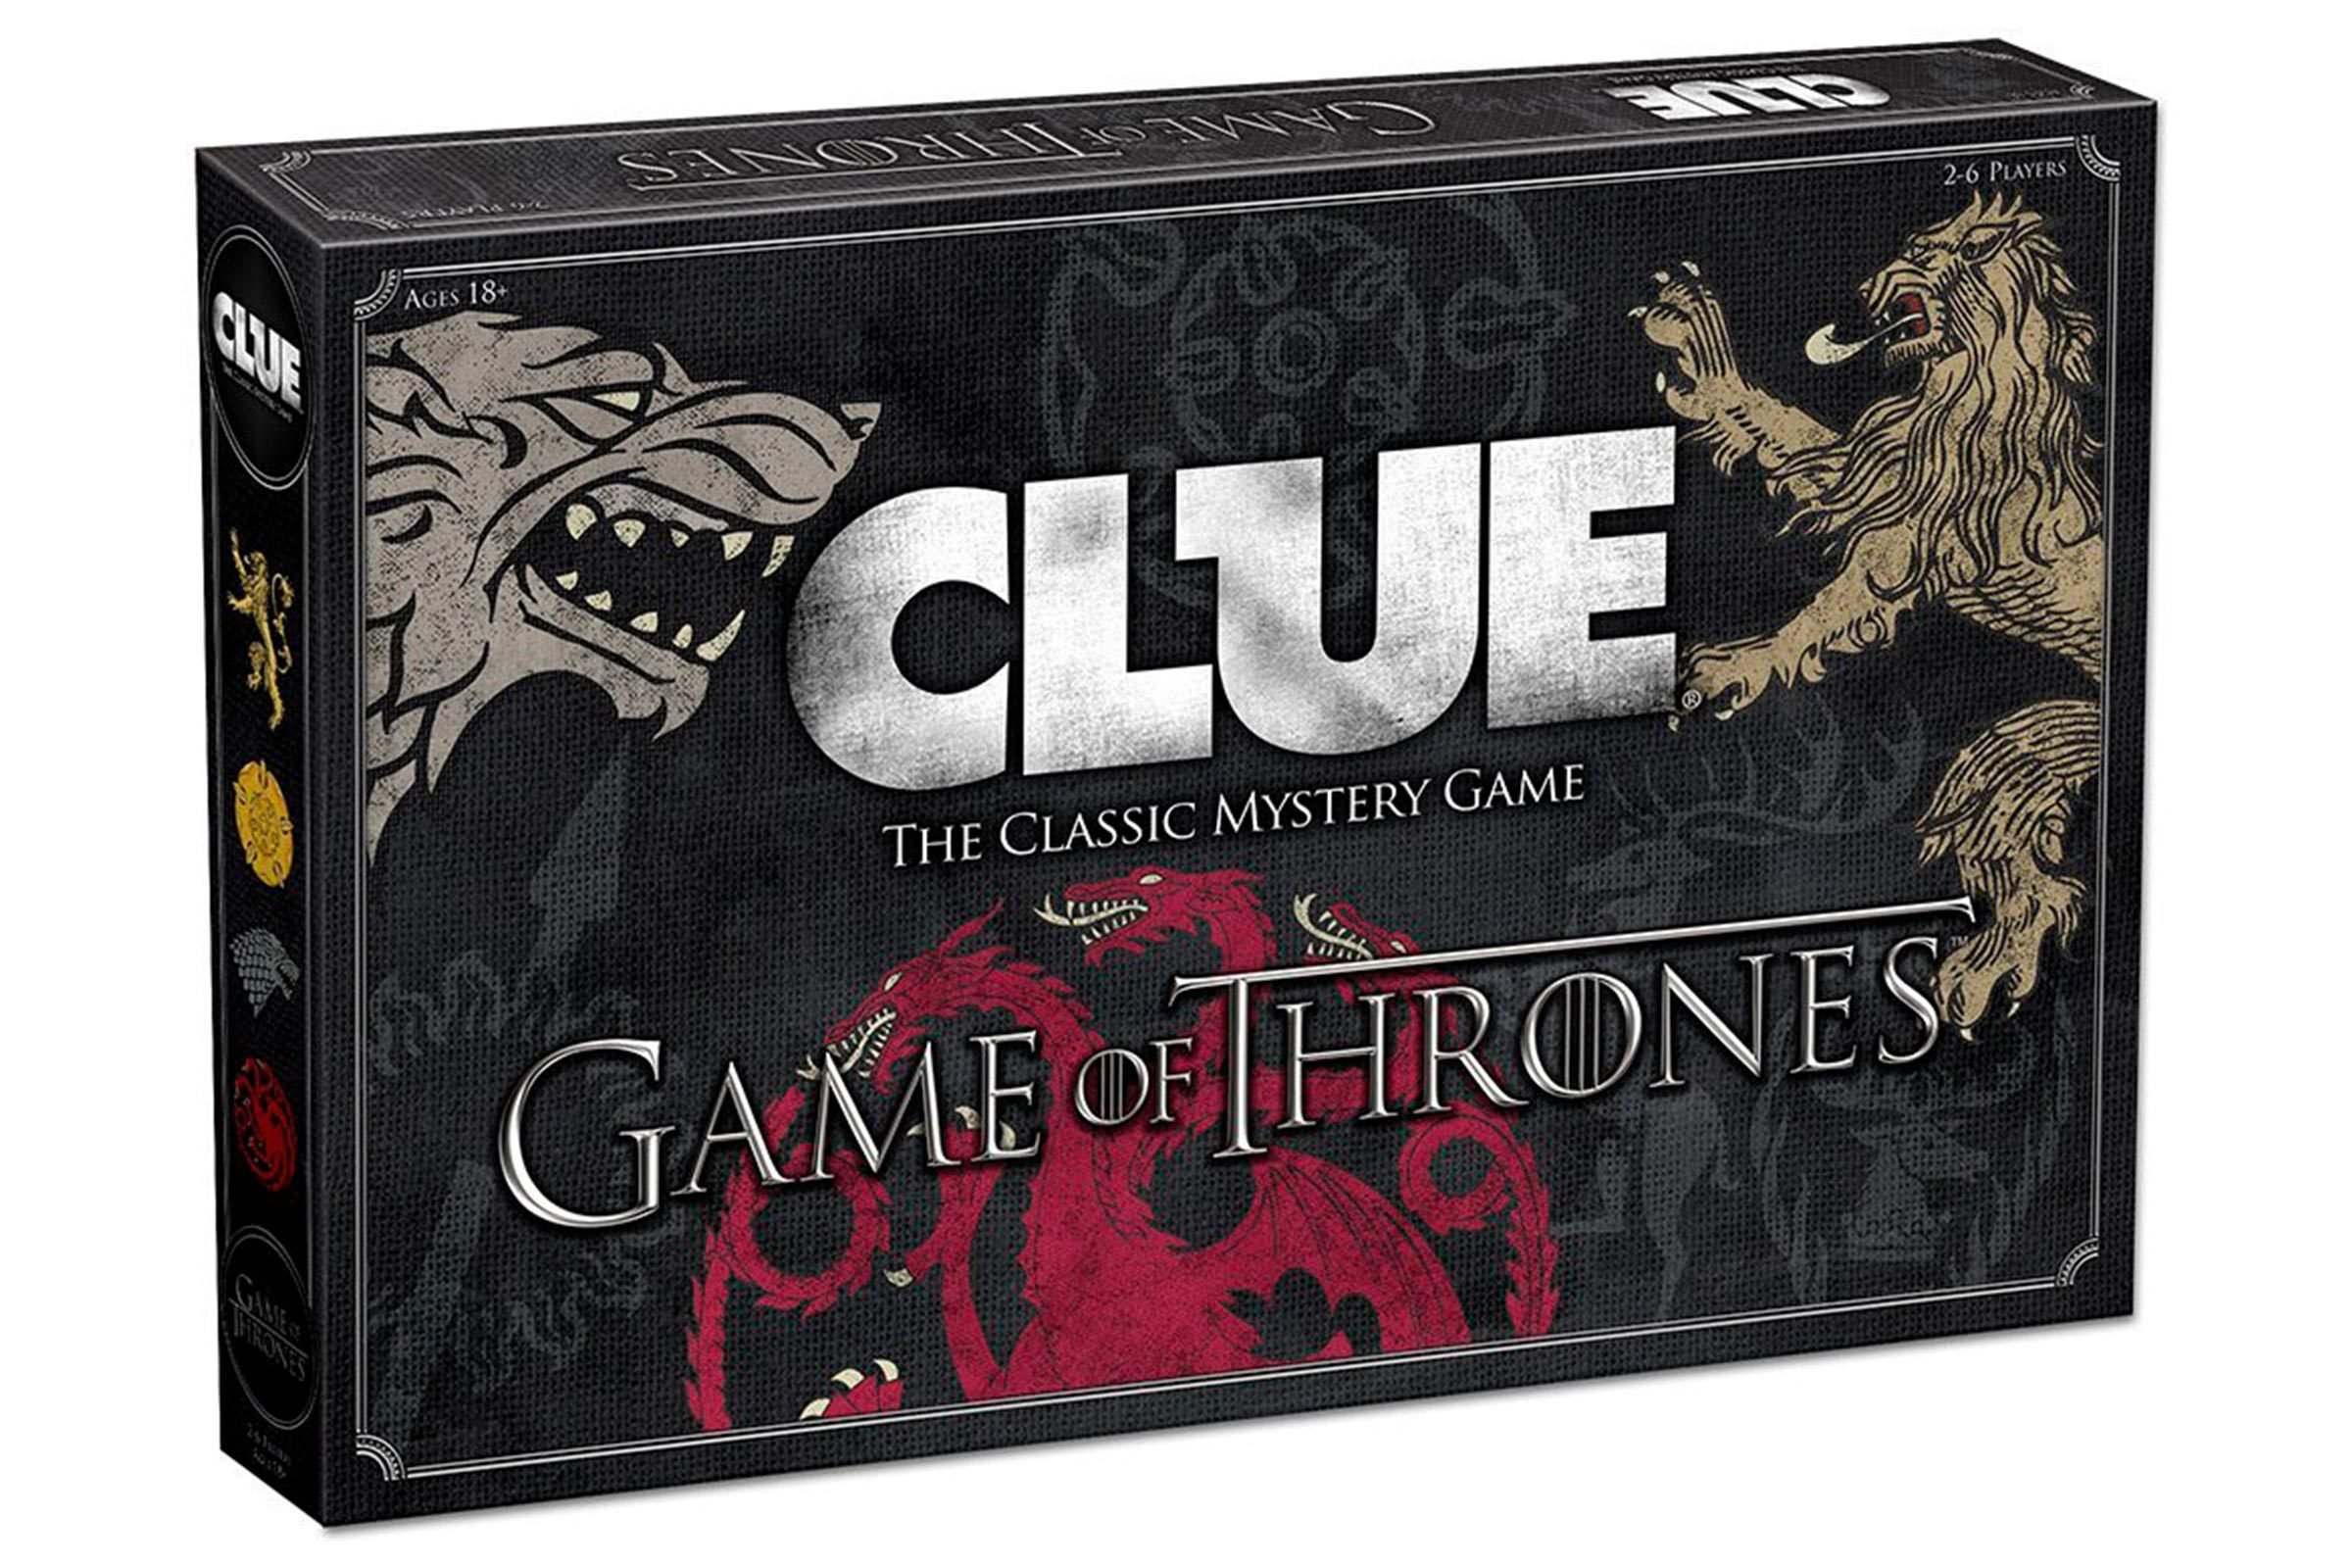 Clue Game of Thrones version